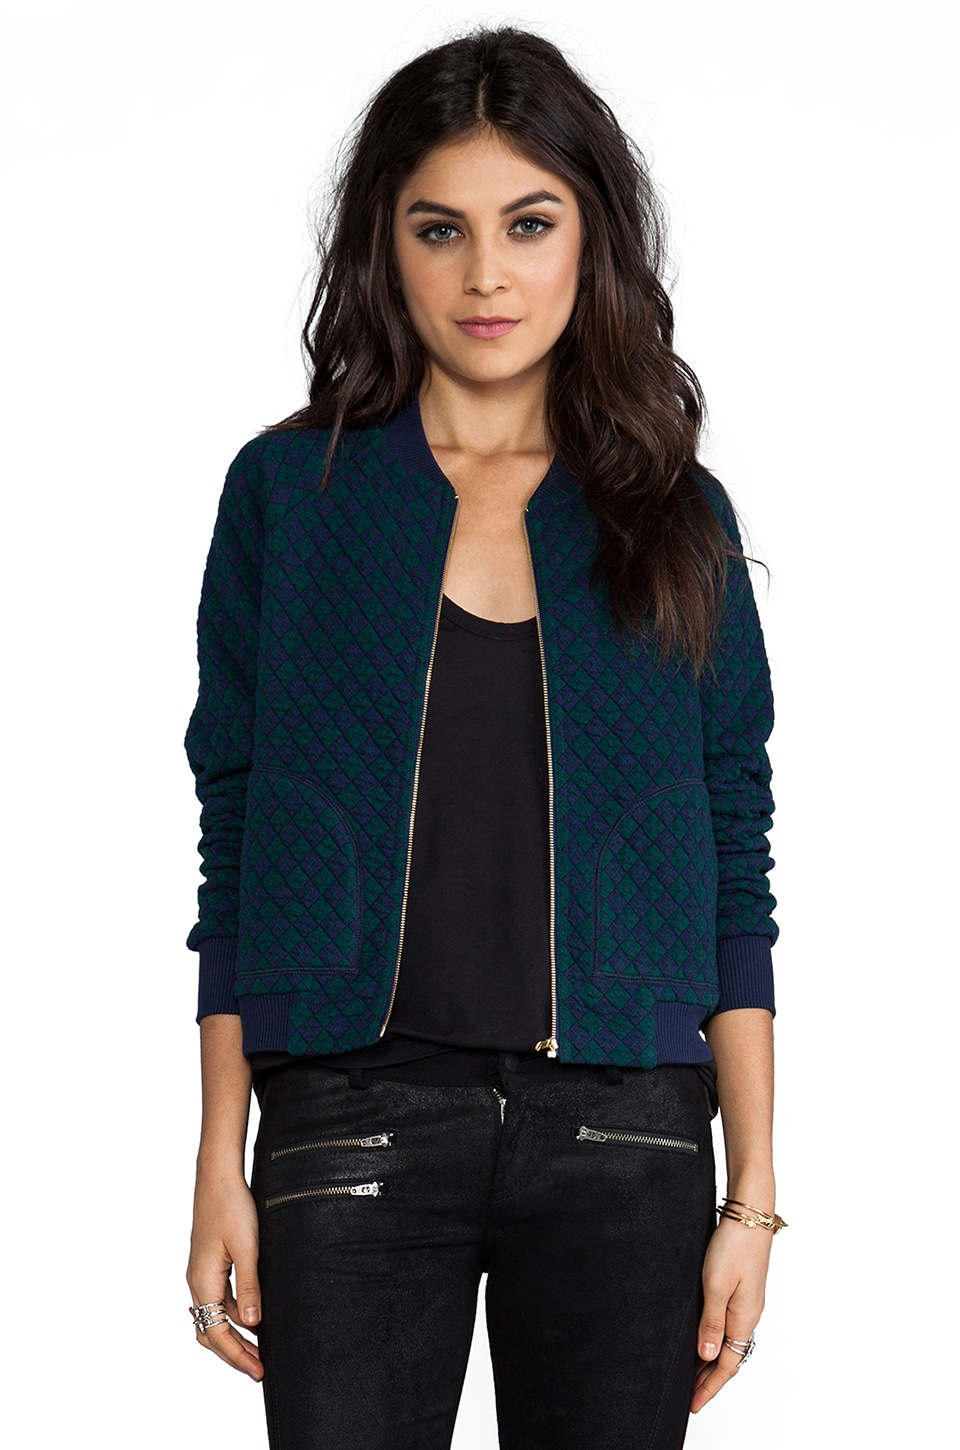 Marc by Marc Jacobs Quilty Argyle Bomber Jacket in Jungle Green Multi